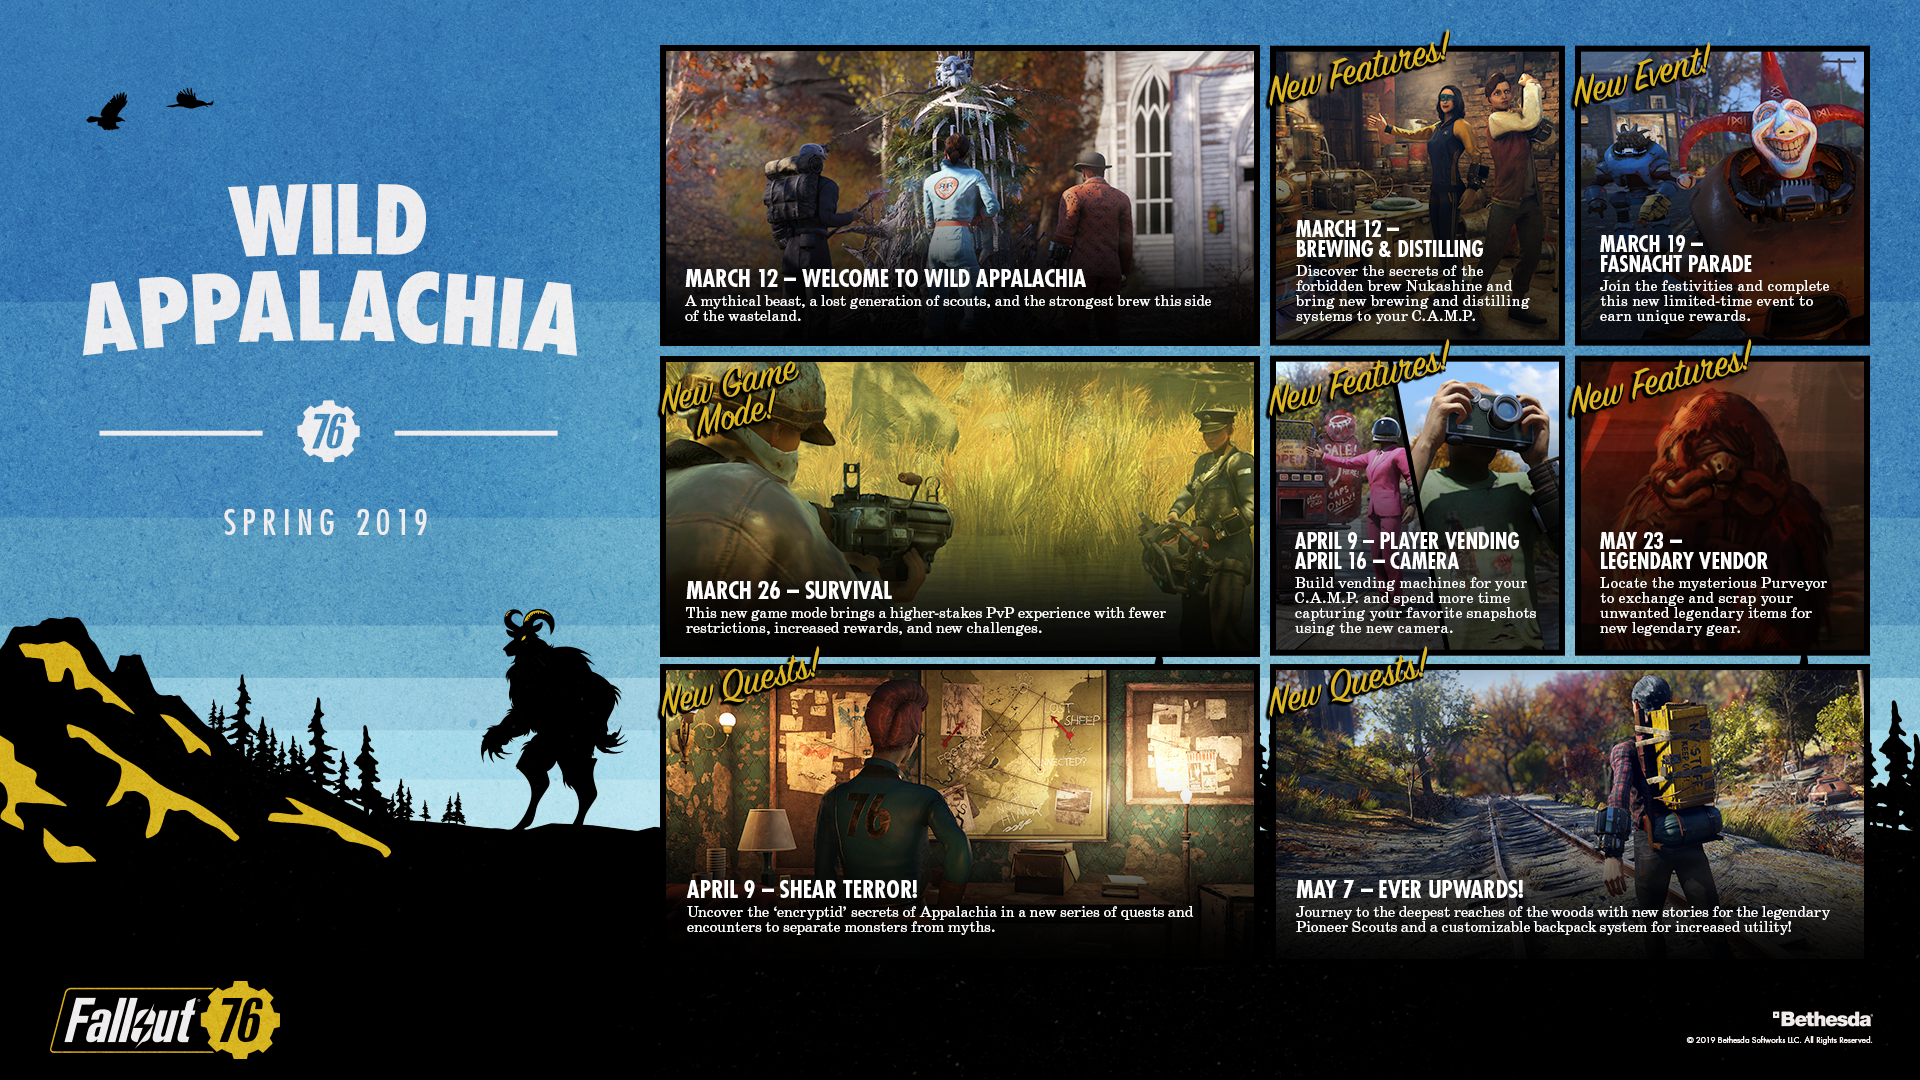 Bethesda Shares Fallout 76 Content Roadmap Featuring New